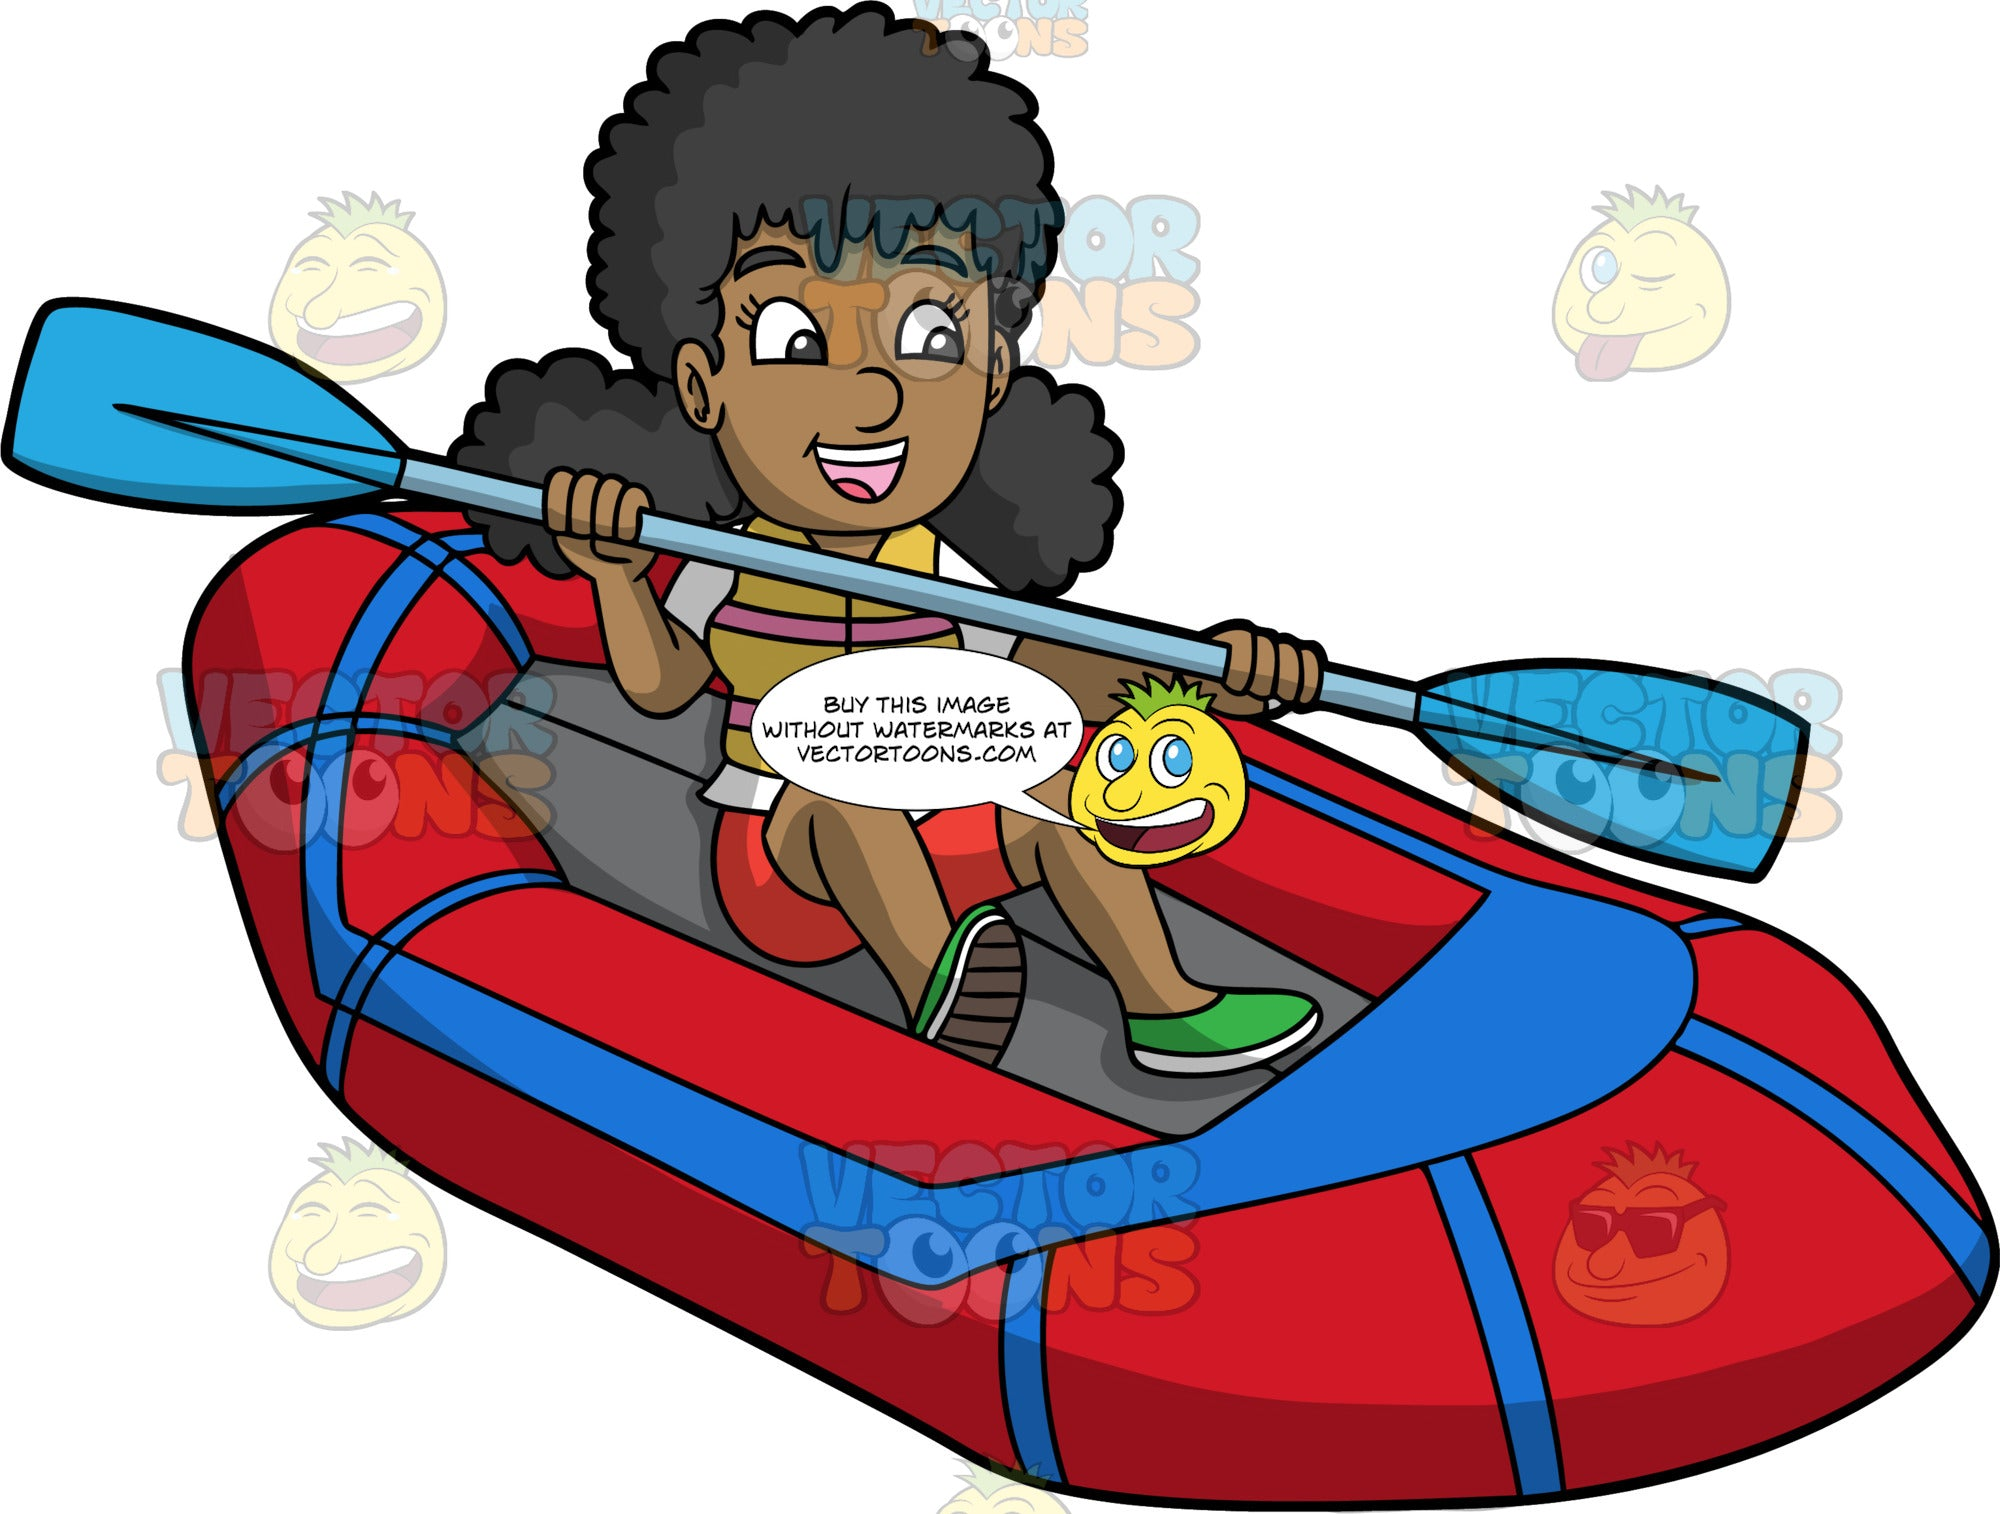 A Happy Black Woman Skillfully Navigating Her Raft Through The Water. A black woman wearing red shorts, a white t-shirt and green shoes, uses a double bladed paddle to steer the red raft she is sitting in